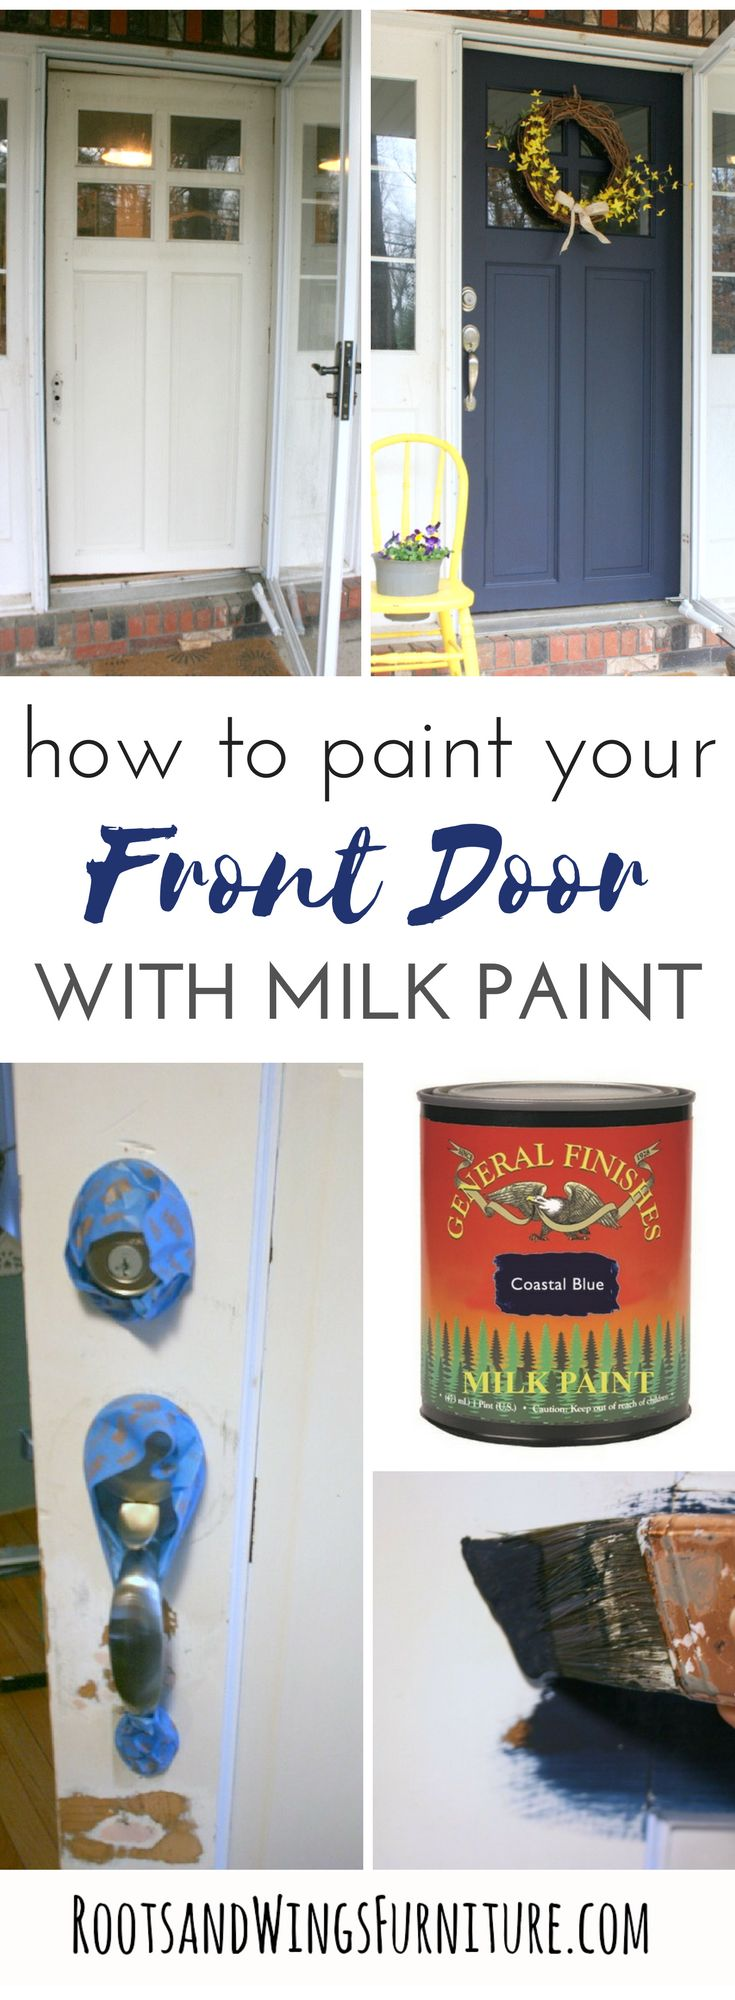 How to refurbish an old front door with a fast and easy makeover. Use General Finishes Milk Paint to transform your front door.  Coastal Blue front door makeover by Jenni of Roots and Wings Furniture.